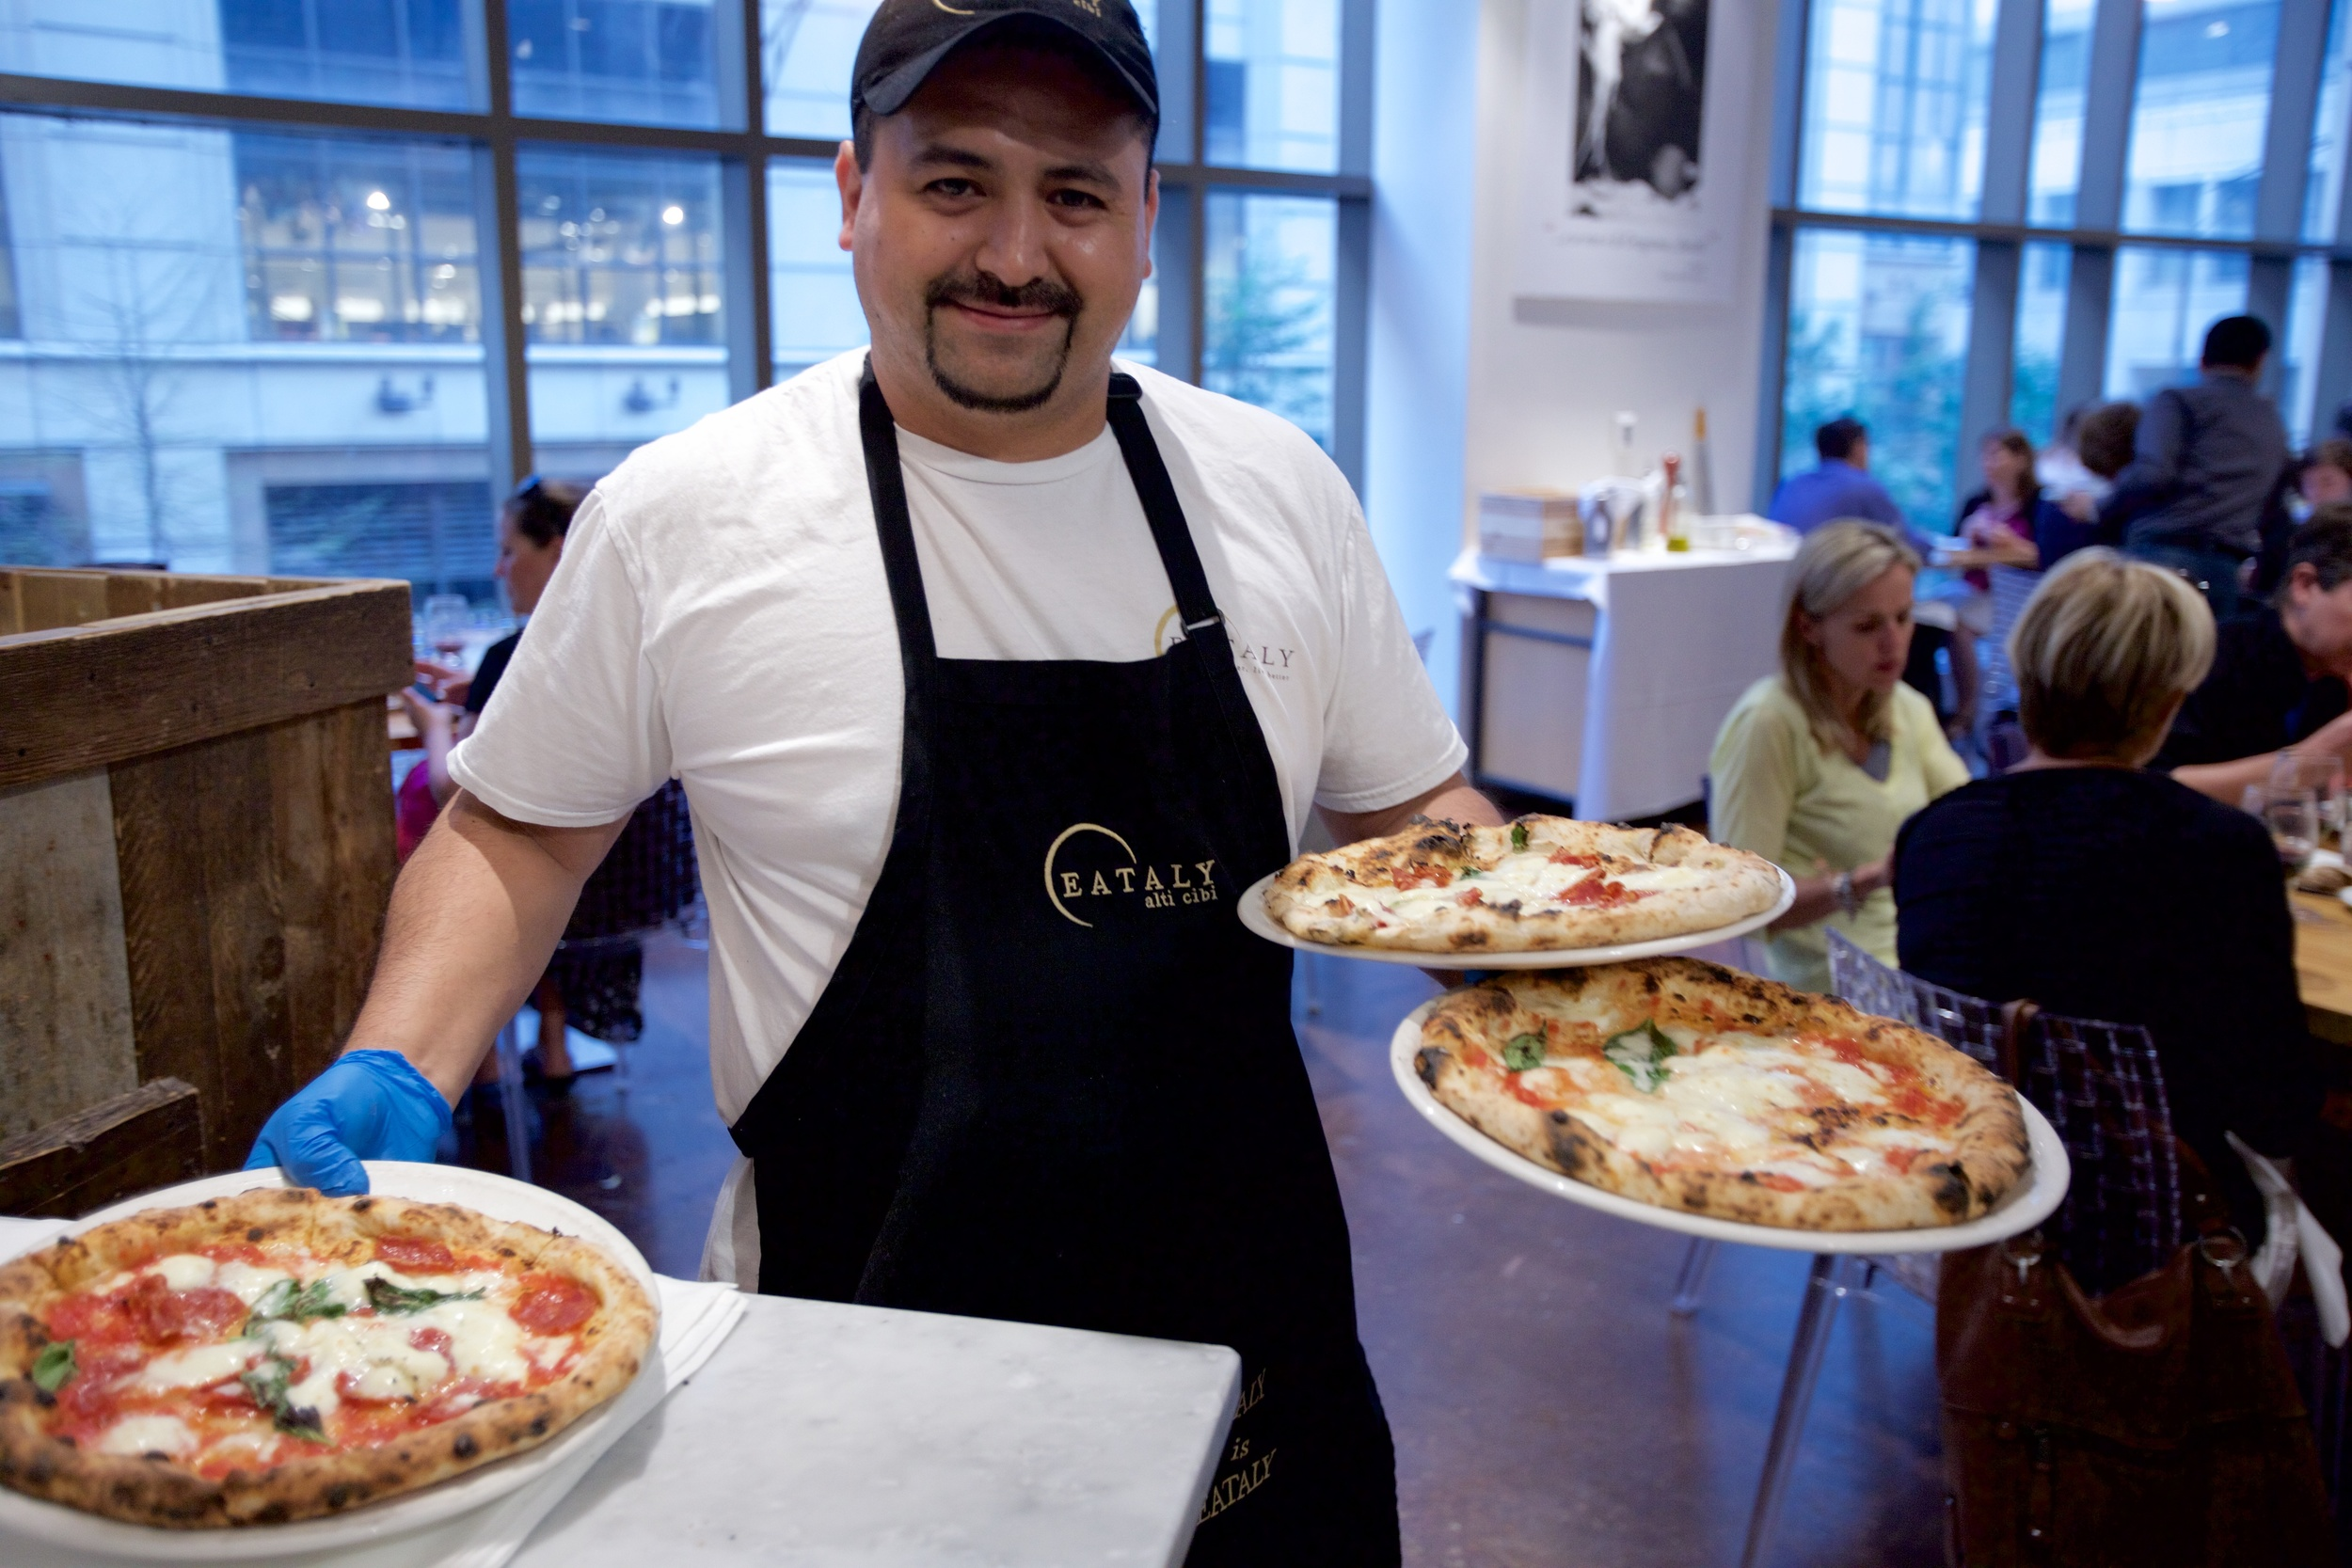 Pizza server at eataly